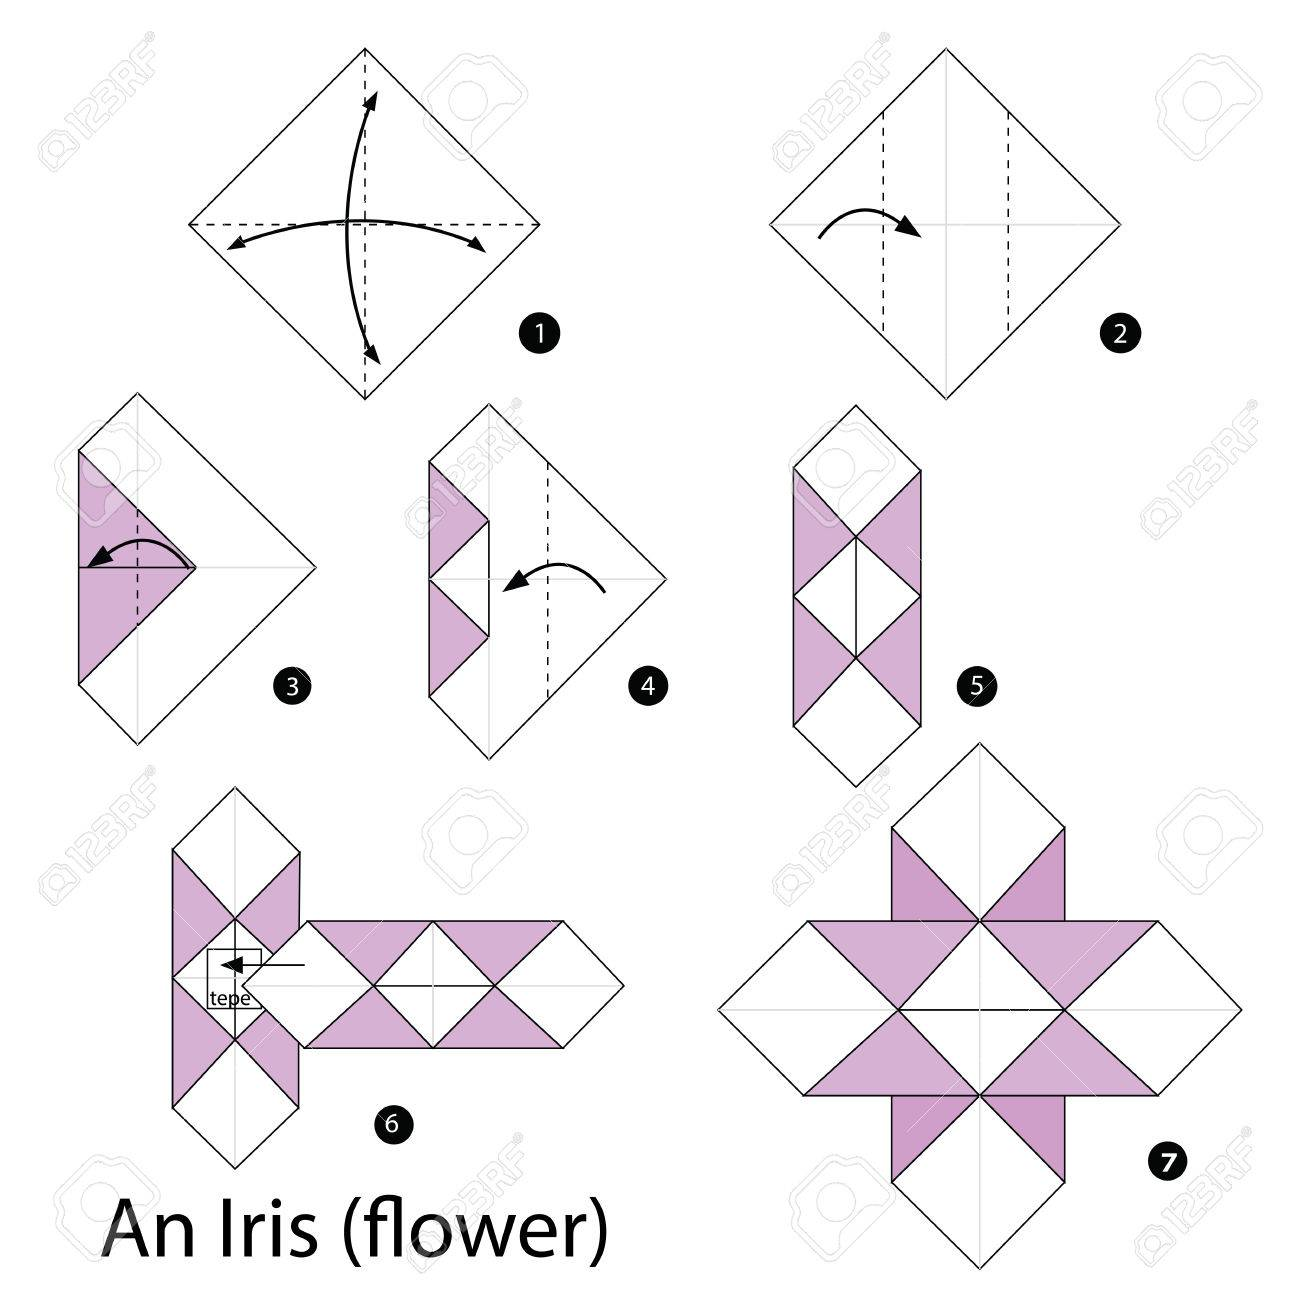 Step by step instructions how to make origami an iris flower step by step instructions how to make origami an iris flower stock vector mightylinksfo